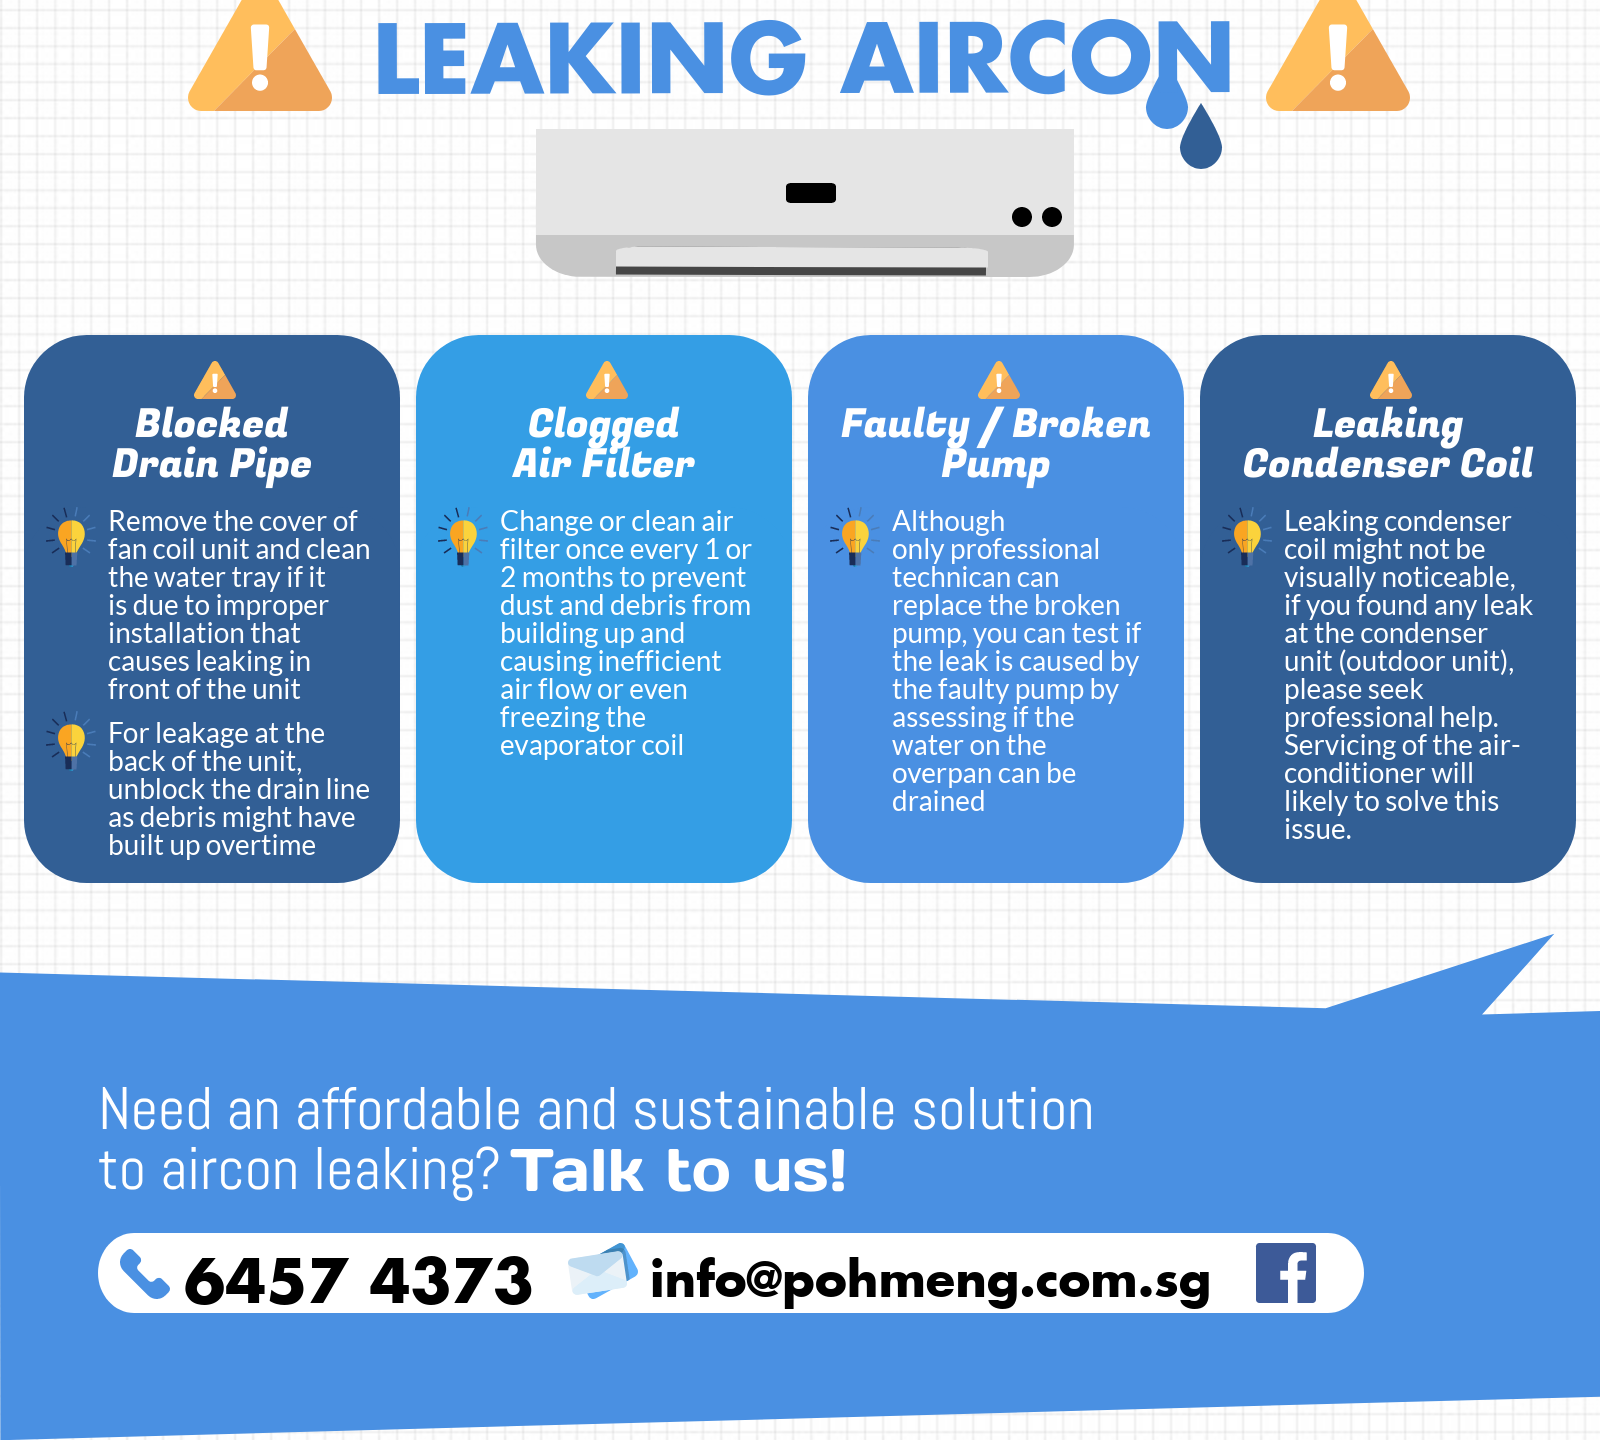 DIY Solutions to Leaking Aircon